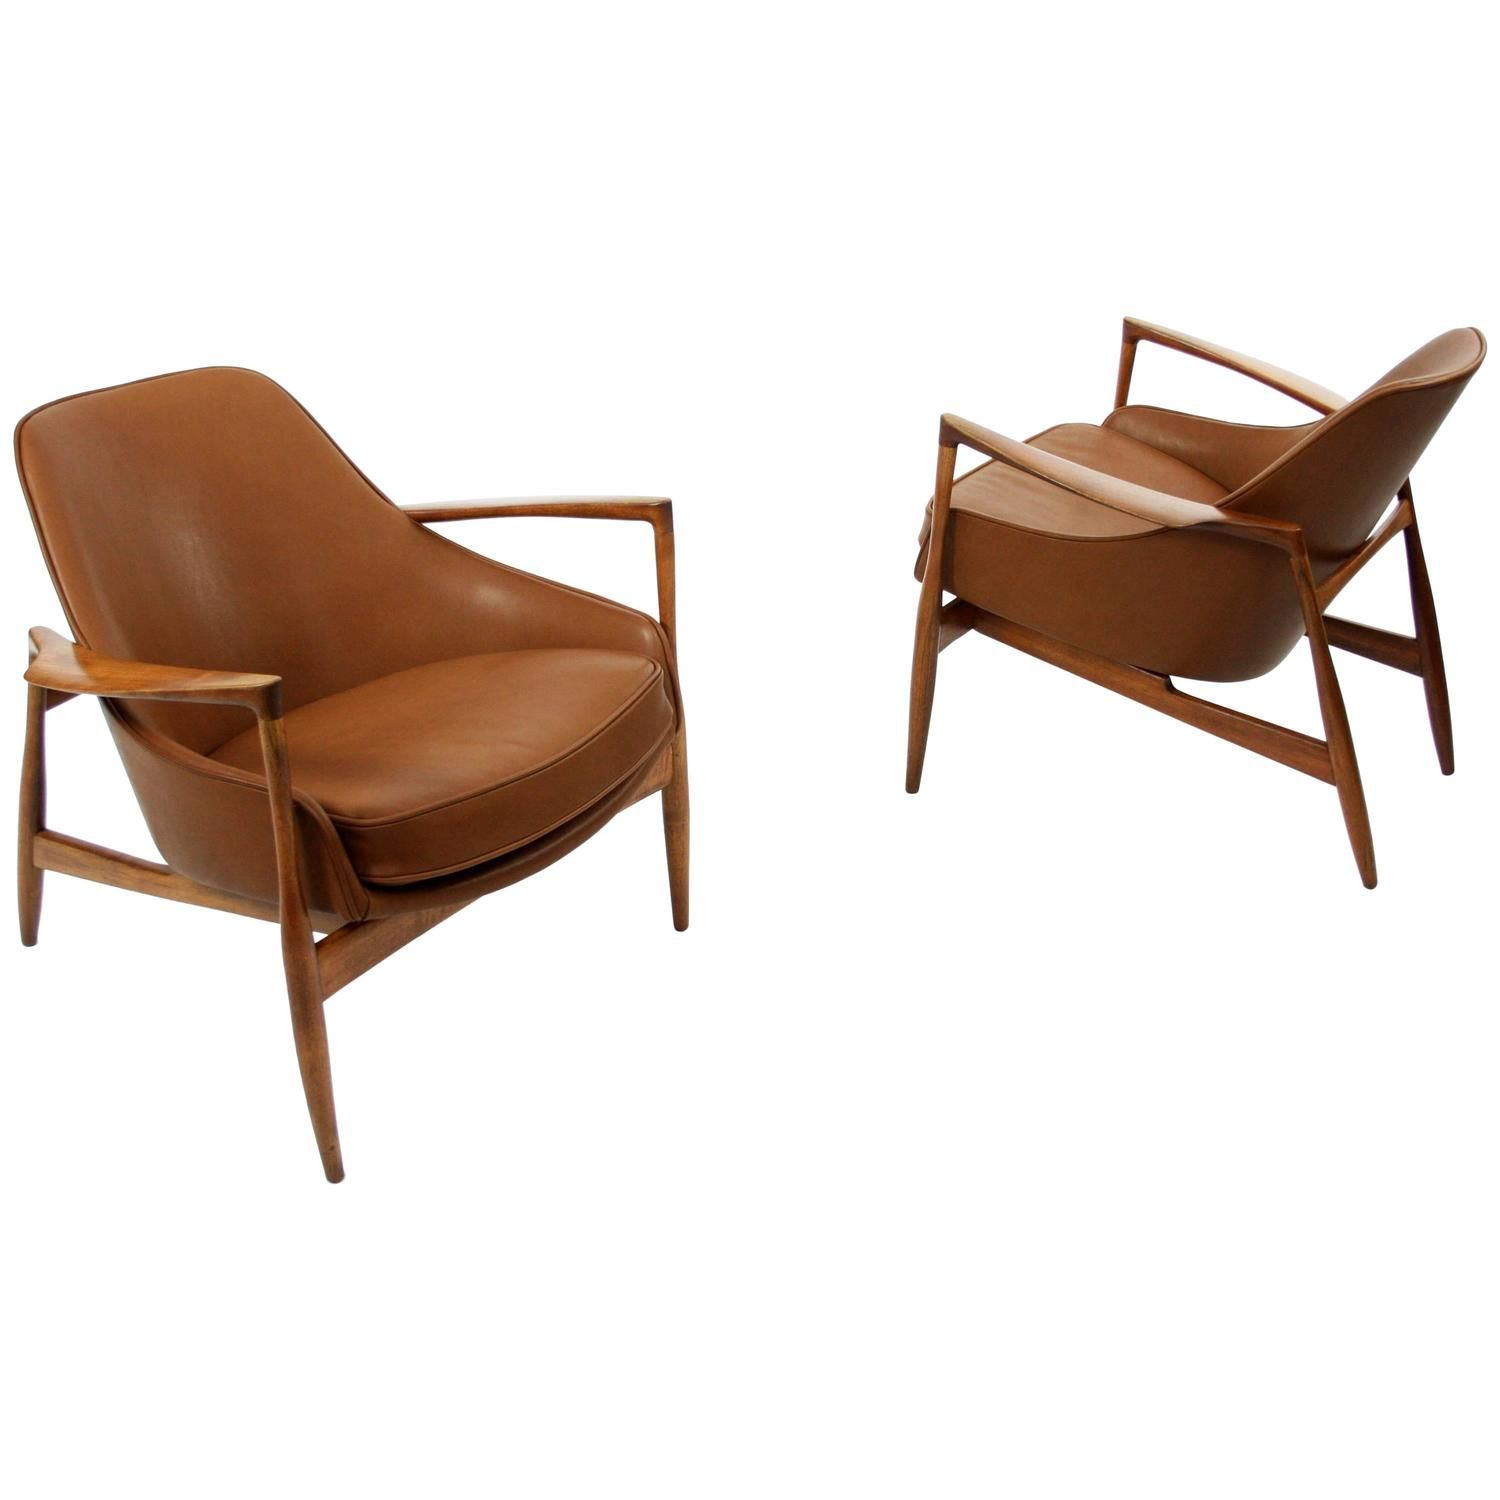 Pair Of Teak And Leather Lounge Chairs By Ib Kofod Larsen,